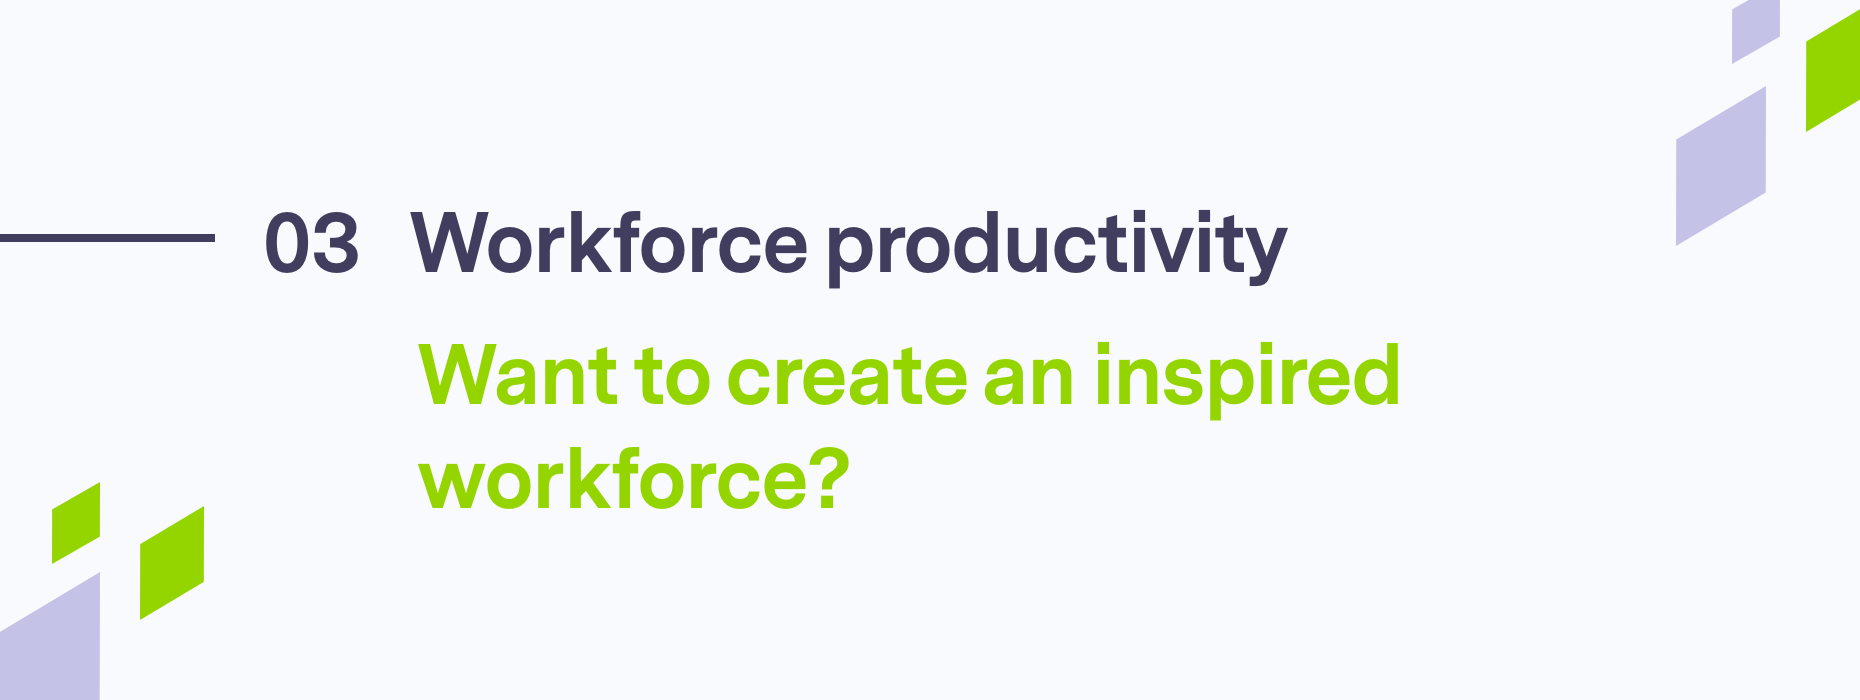 Want to create an inspired workforce?